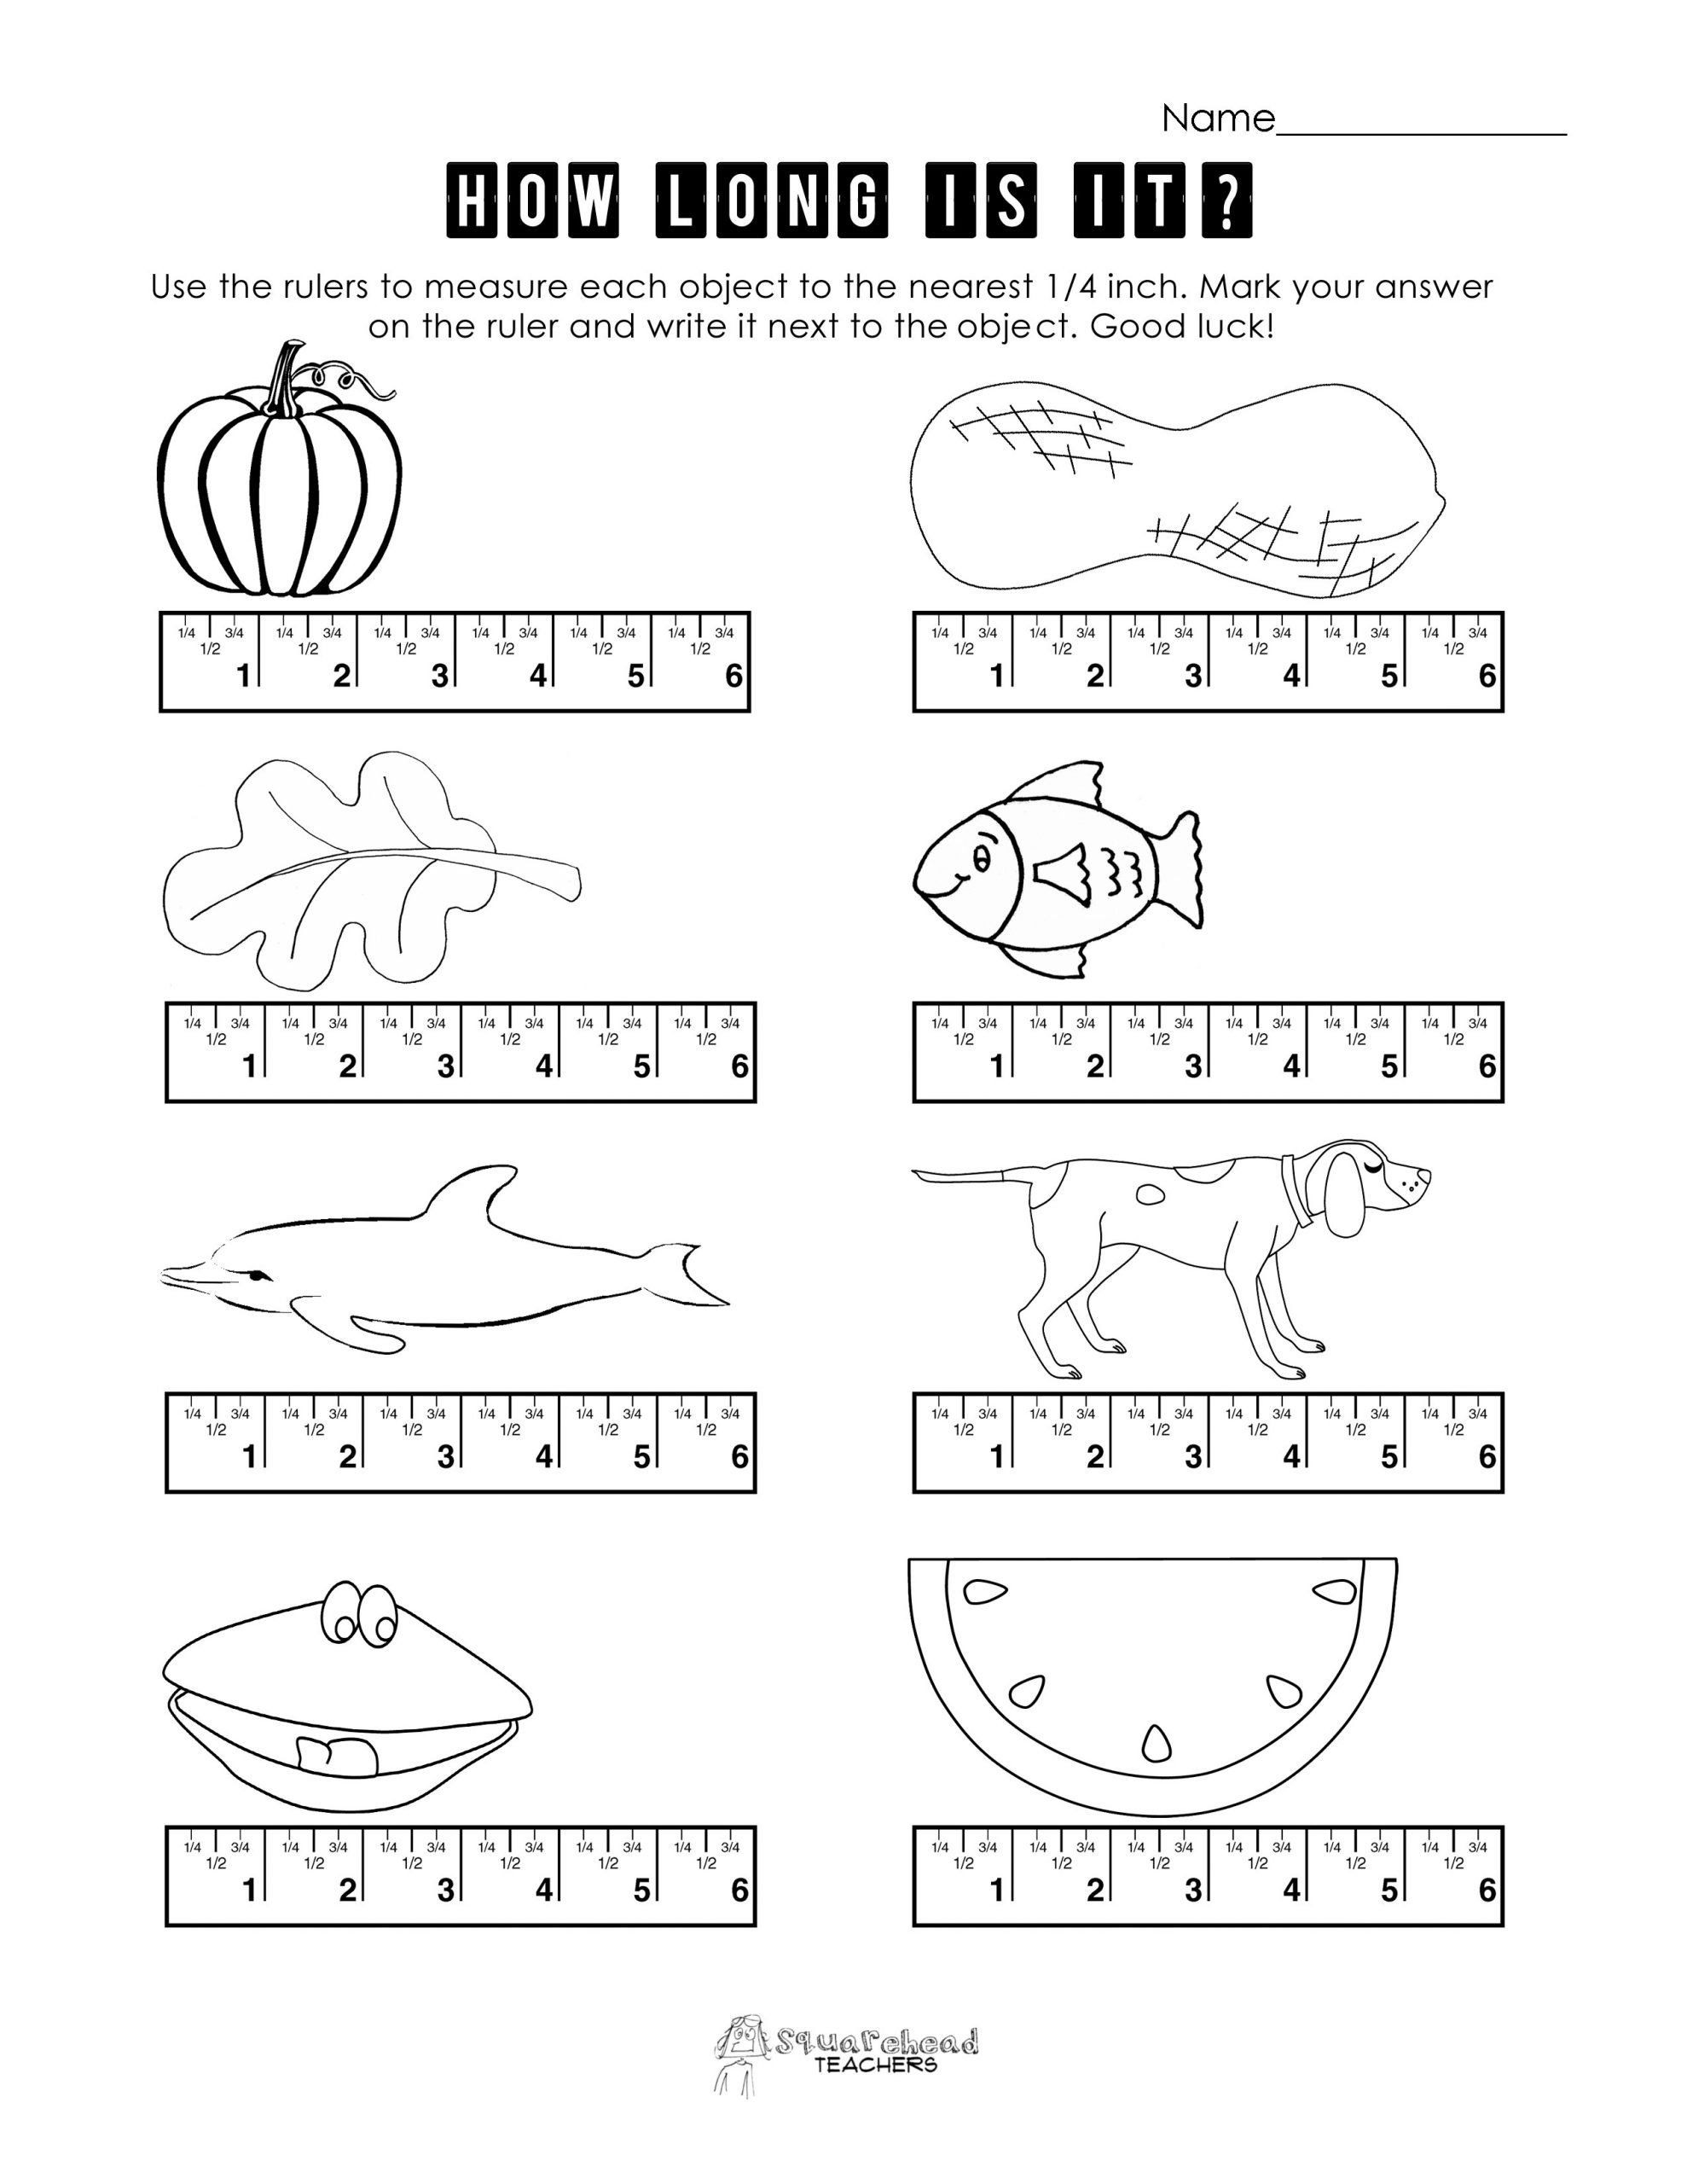 Free Measurement Worksheets Grade 1 Pin On 1st Grade Worksheets & Free Printables